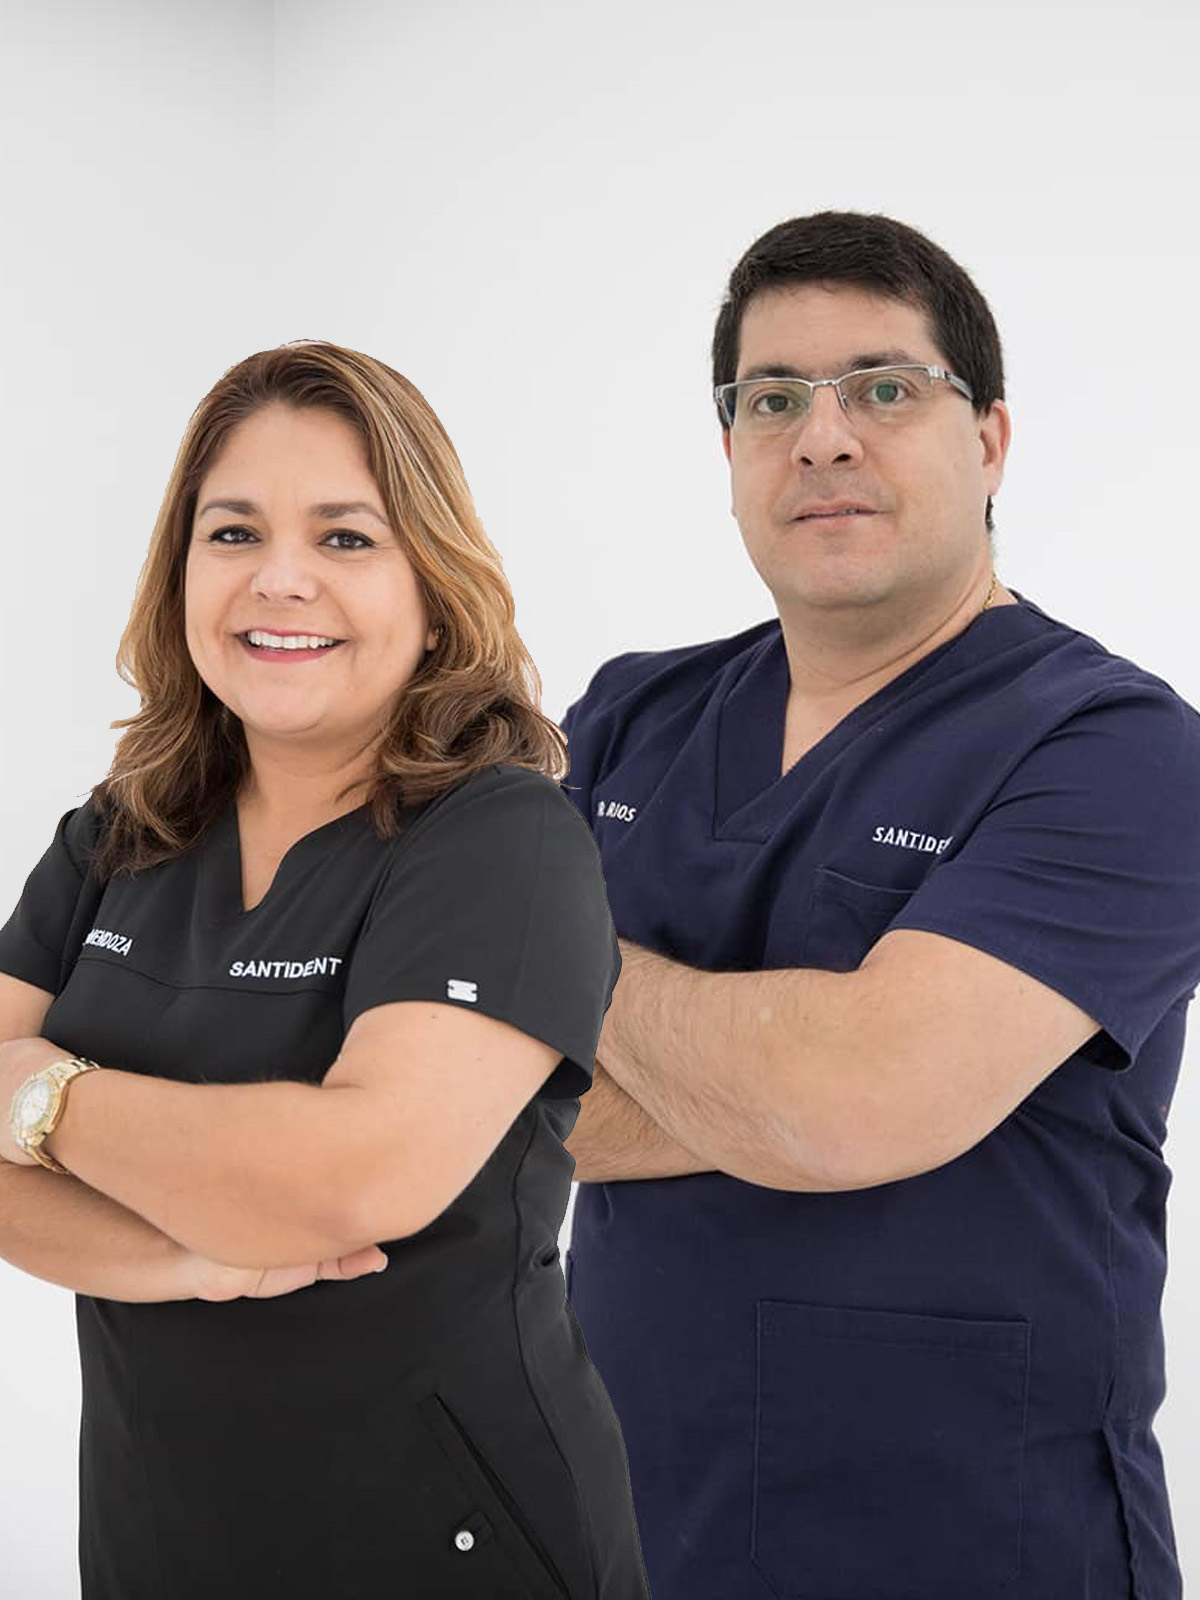 equipo doctores clinicas santident